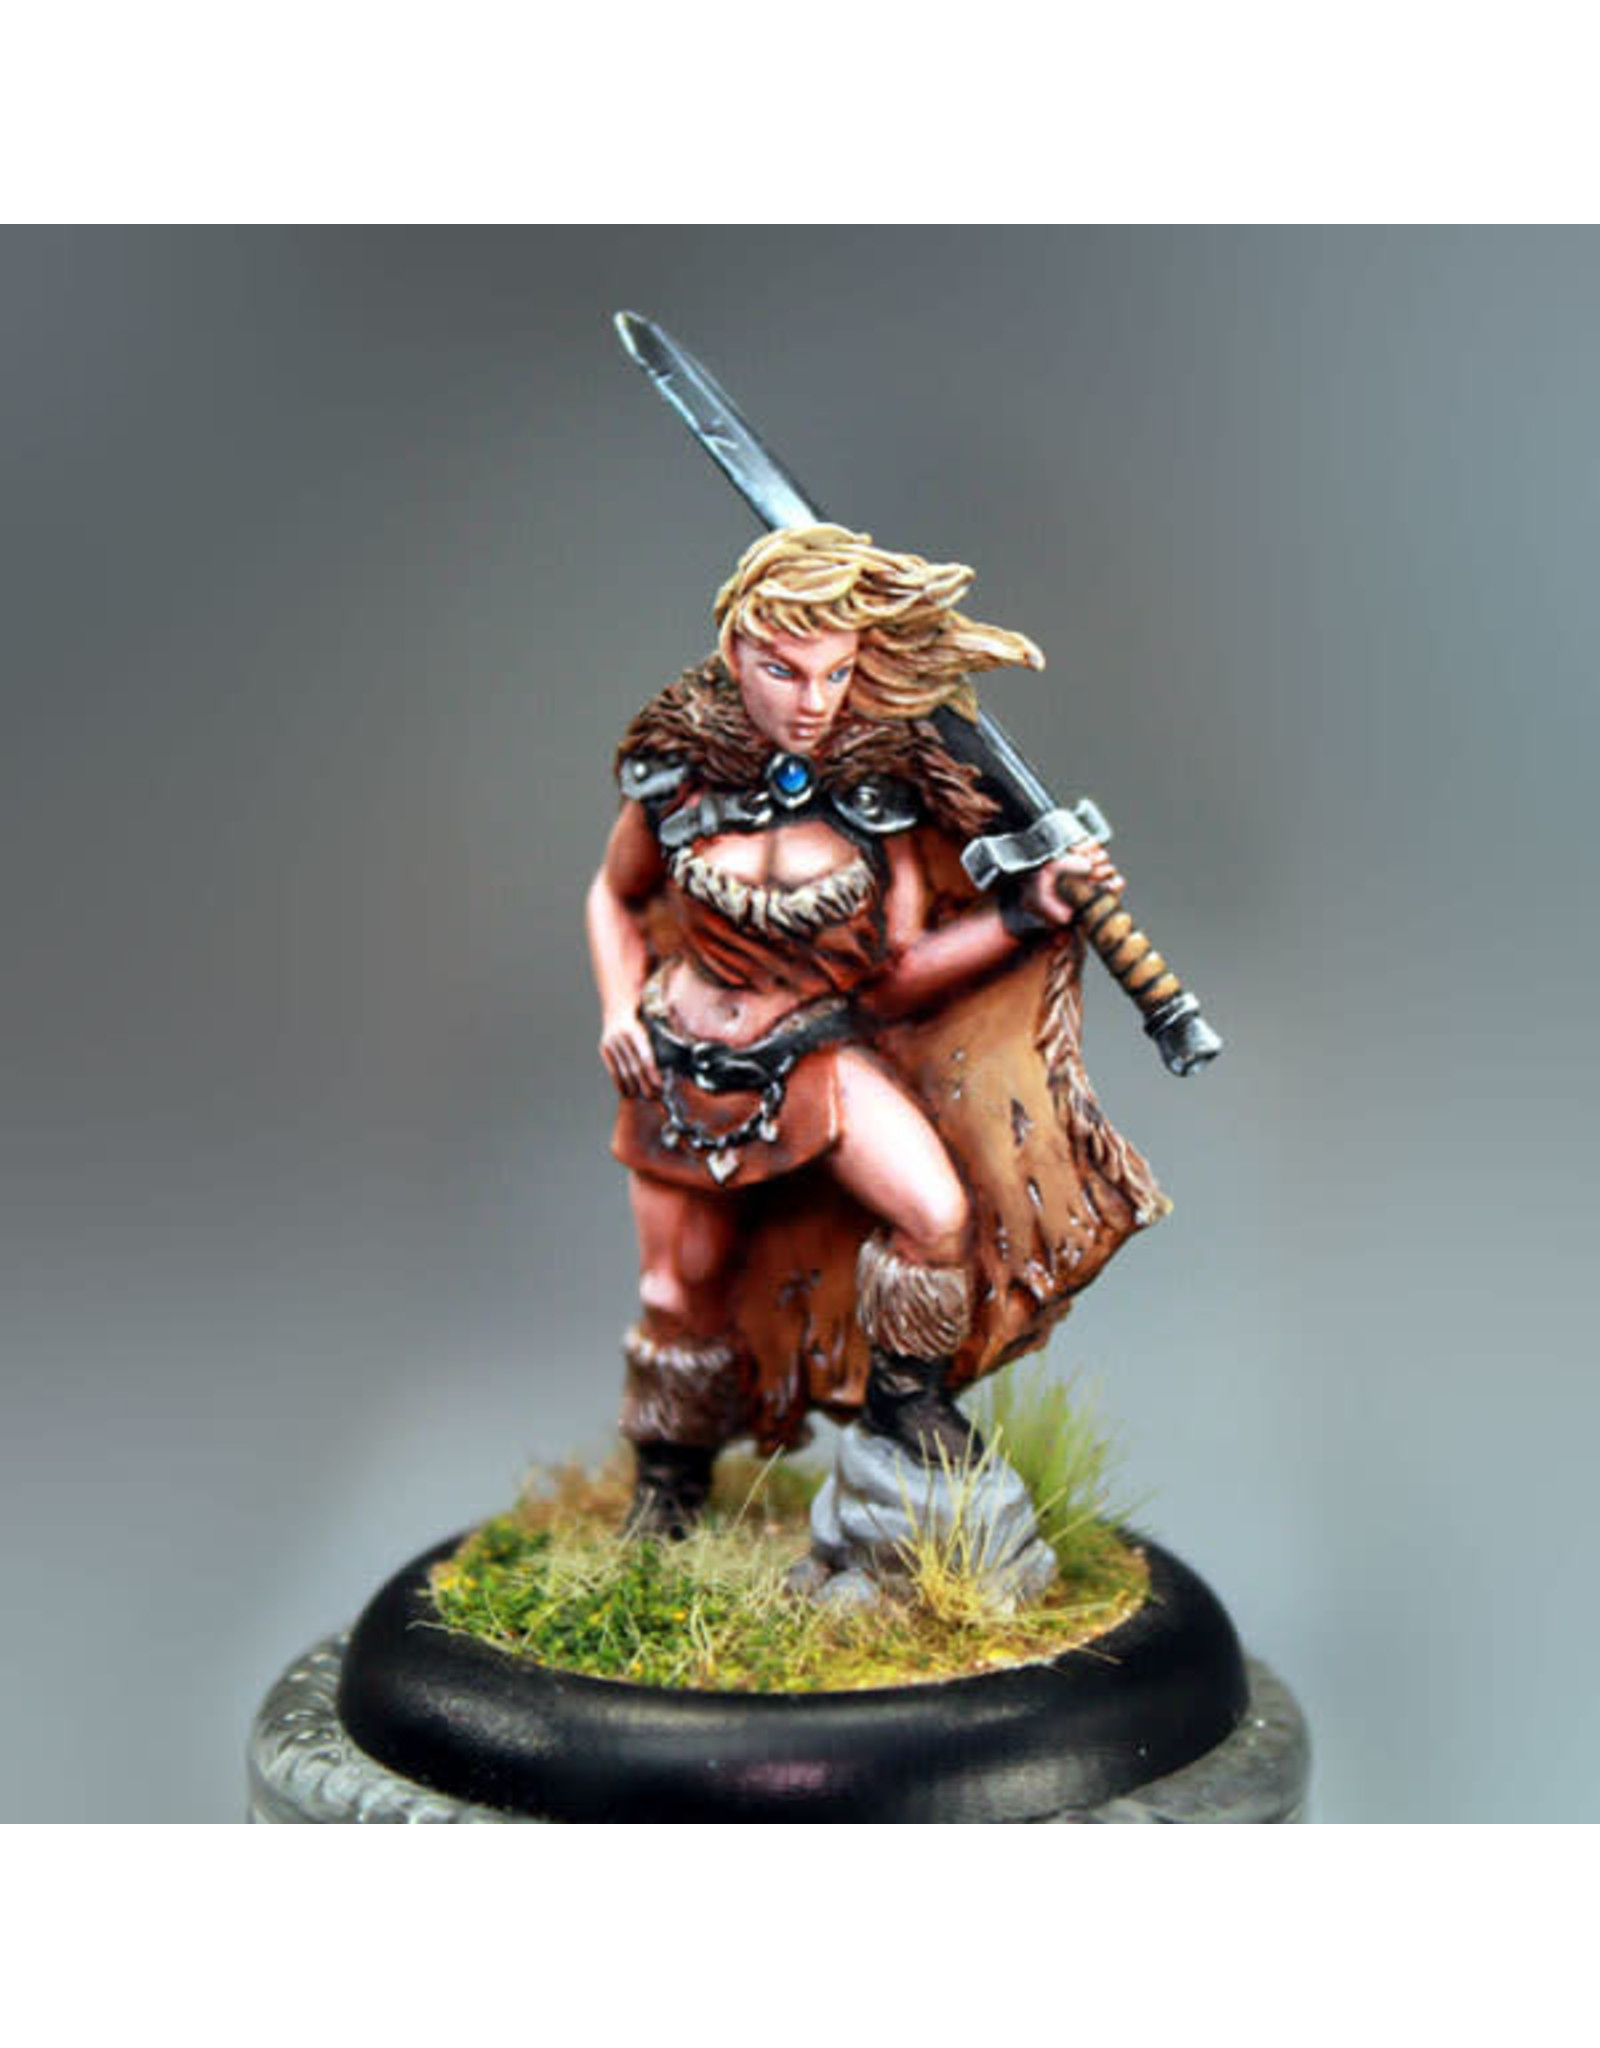 Bombshell Miniatures Bombshell Miniatures: Ronja the Barbarian